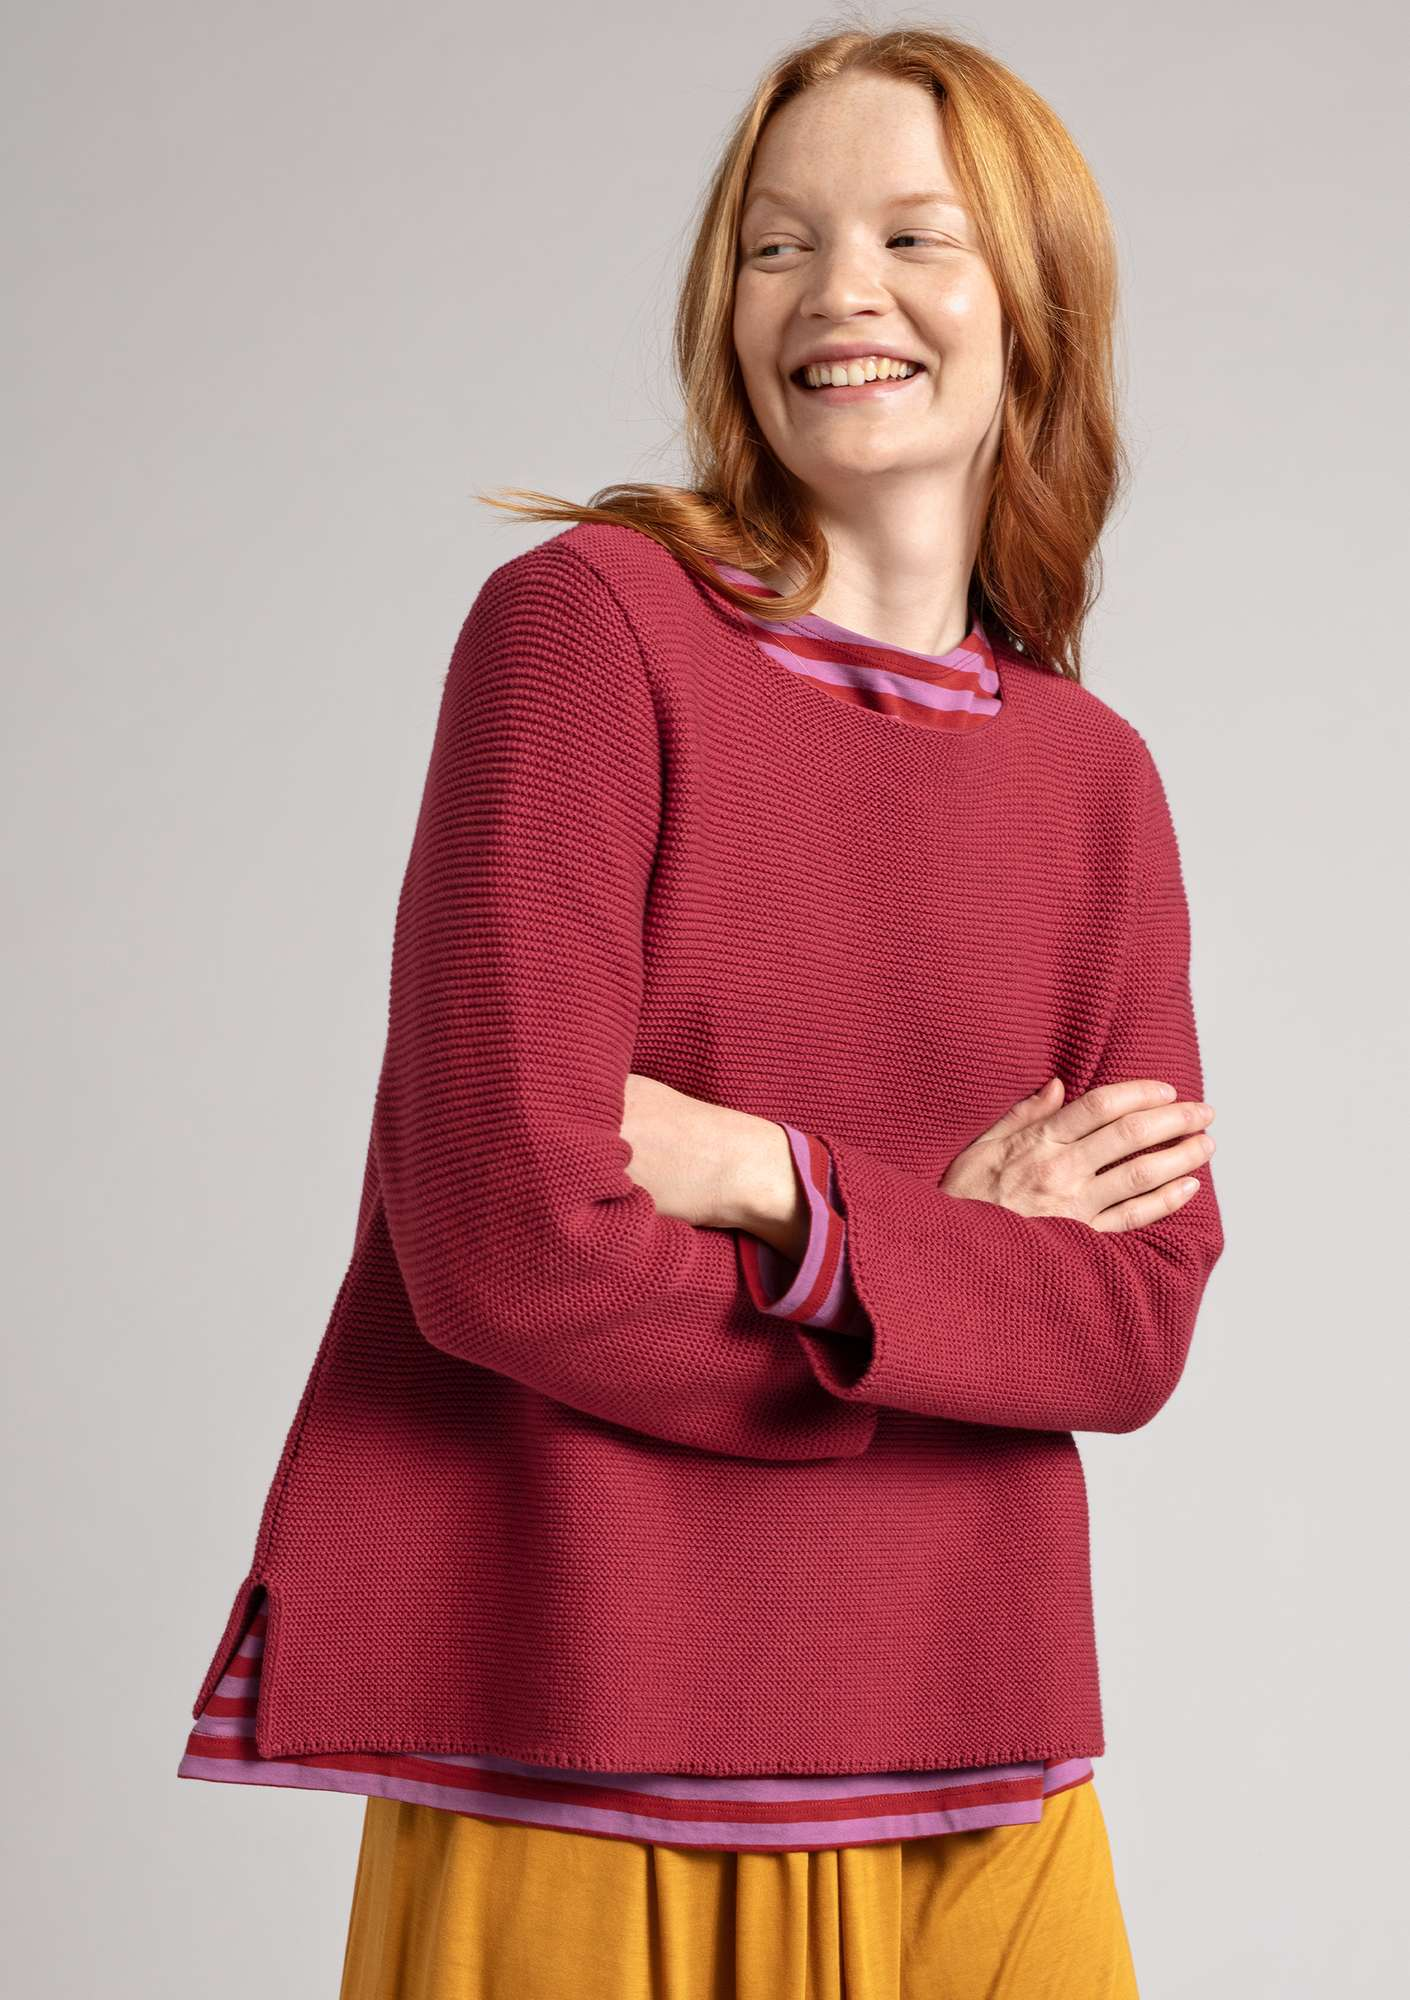 Sweater knit in garter stitch in organic cotton rosewood